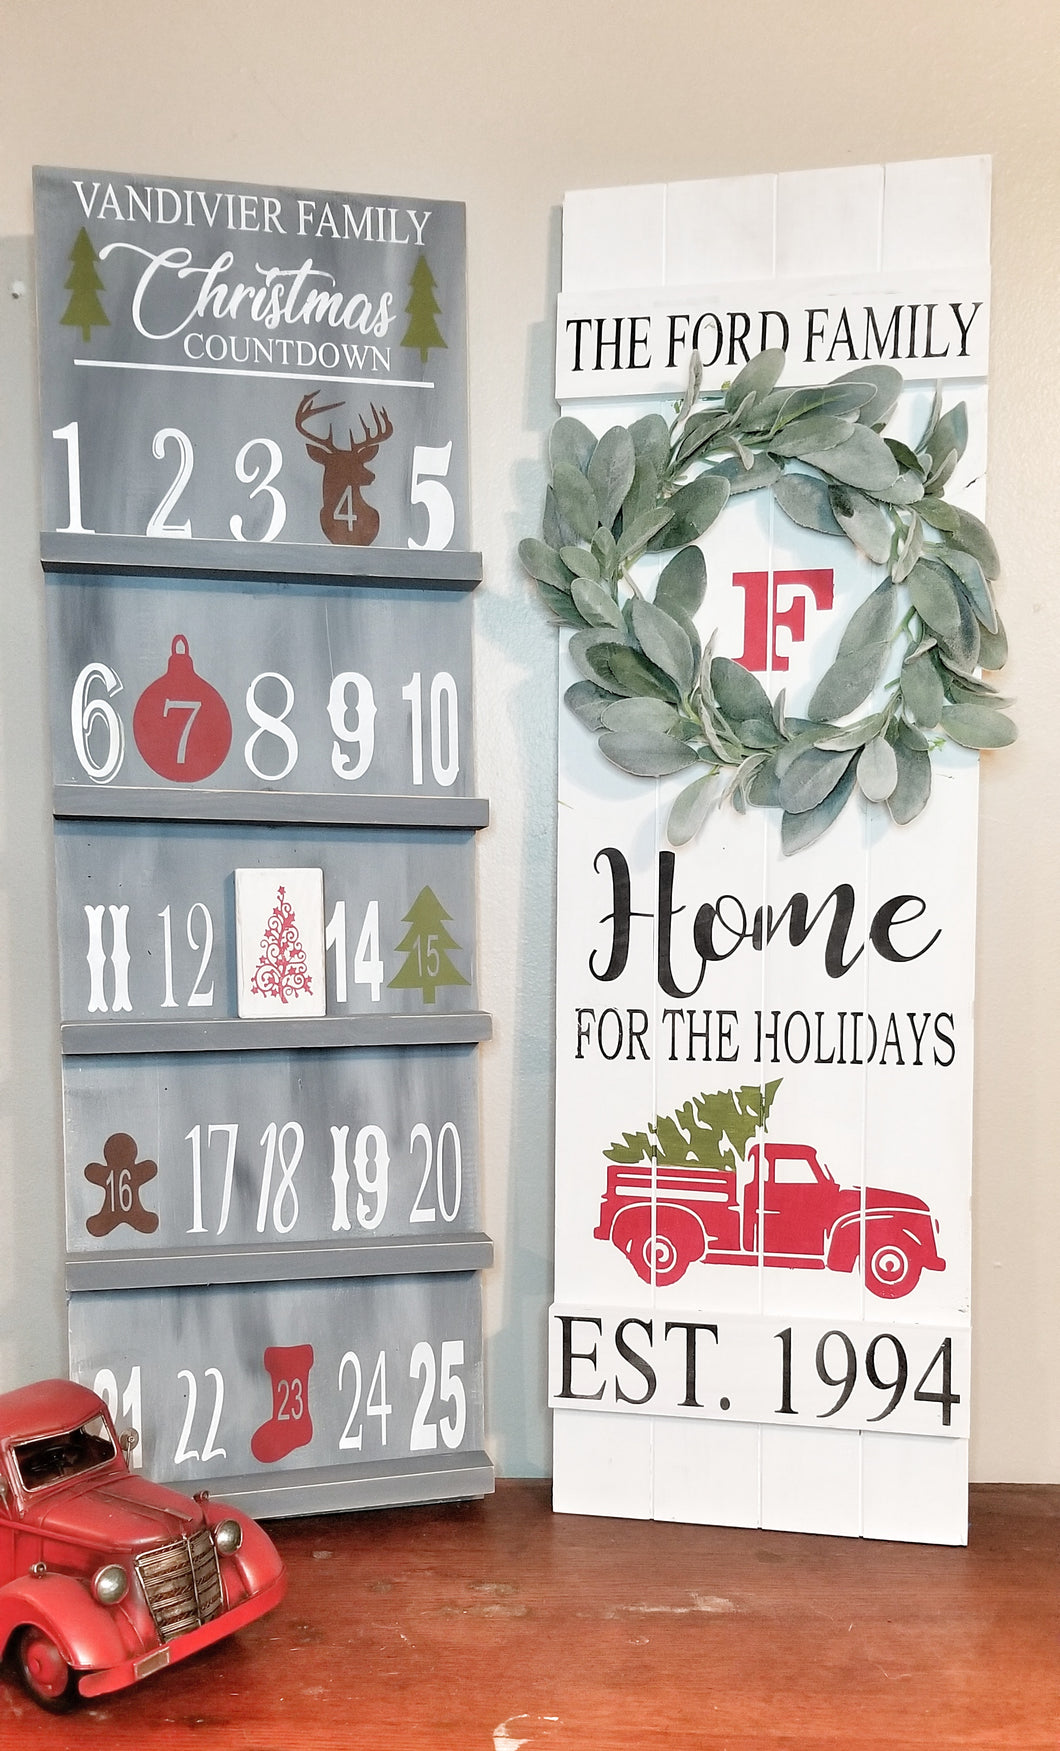 SOLD OUT - DECEMBER 3RD 6pm - Advent Calendar or Home for the Holidays sign